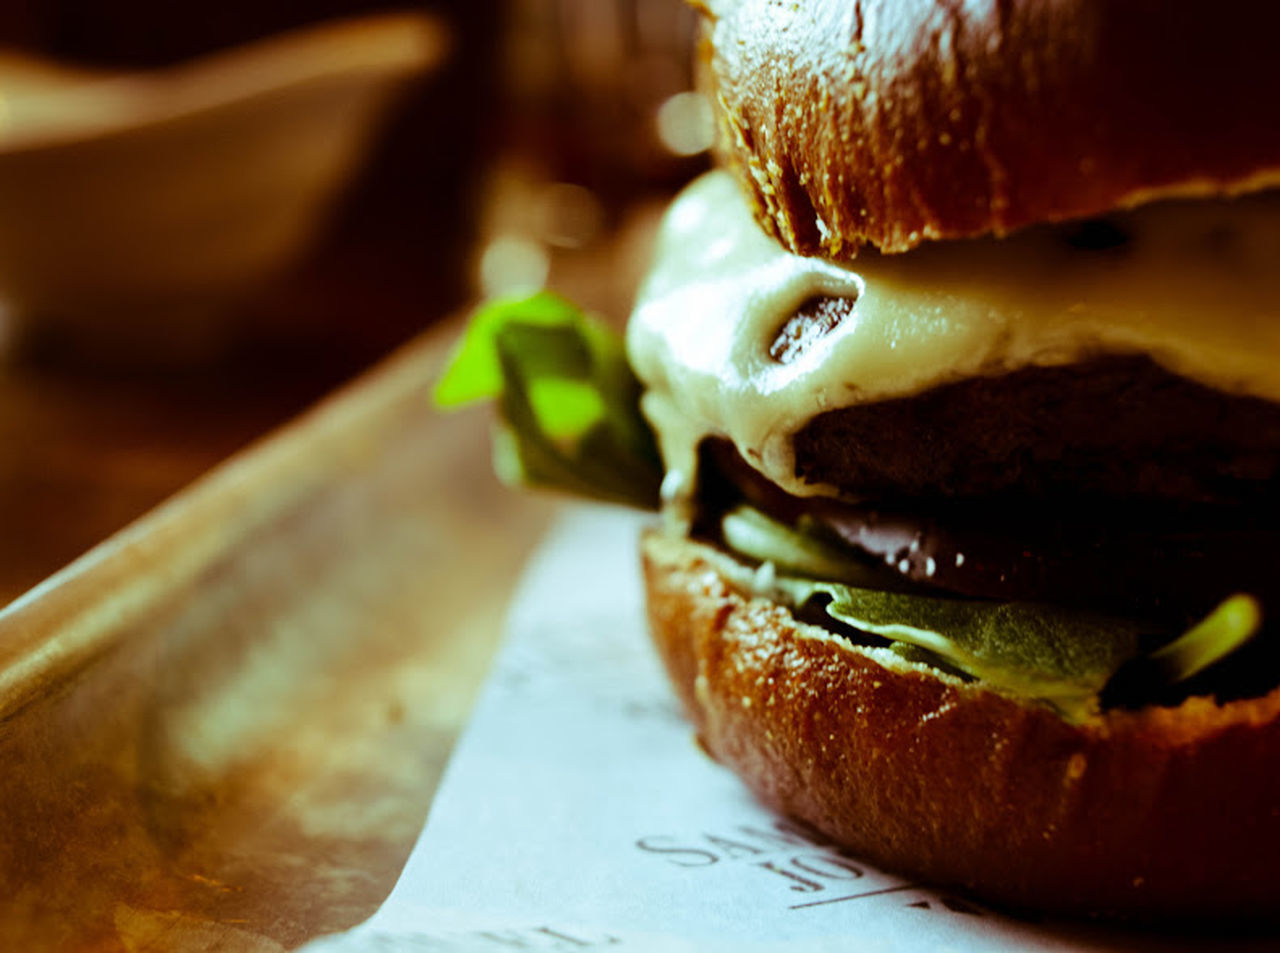 Burger Burger Macro Close-up Day Daylight Daylight Photography Food Food And Drink Food Macro Freshness Gourmet Burger Indoors  Meat Melted Cheese, No People Ready-to-eat Table